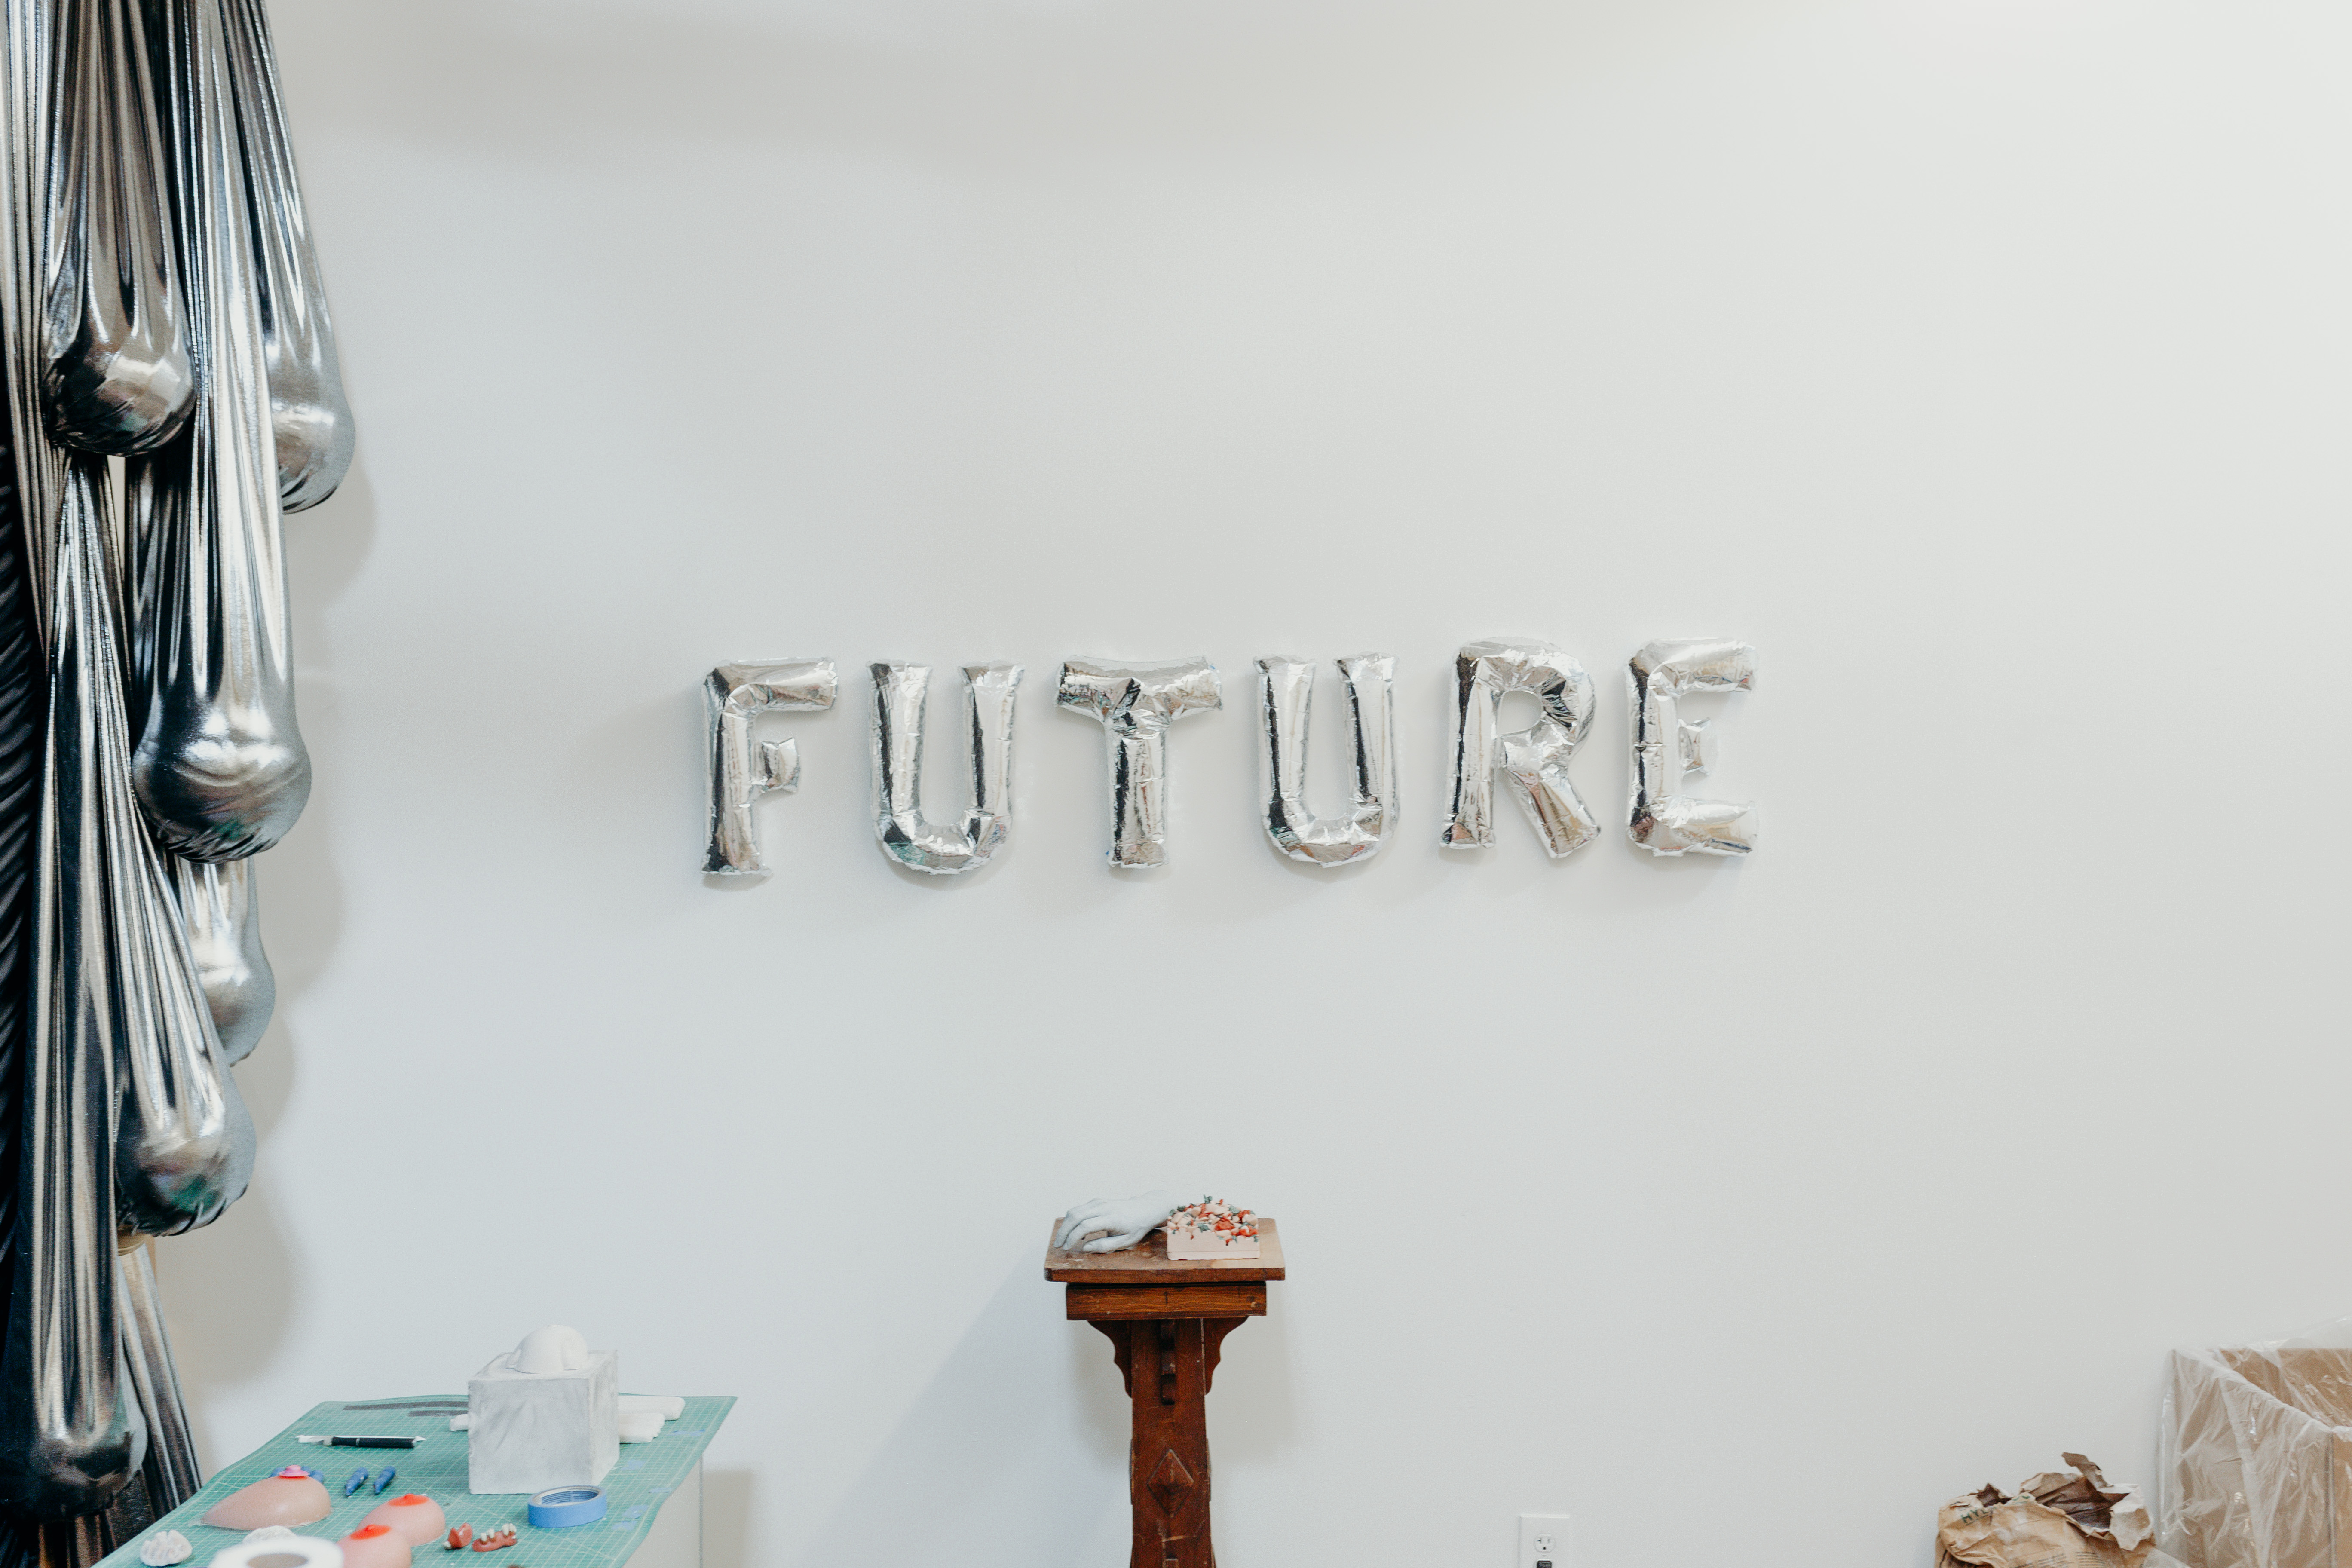 The word FUTURE is spelled out on the wall from balloons.